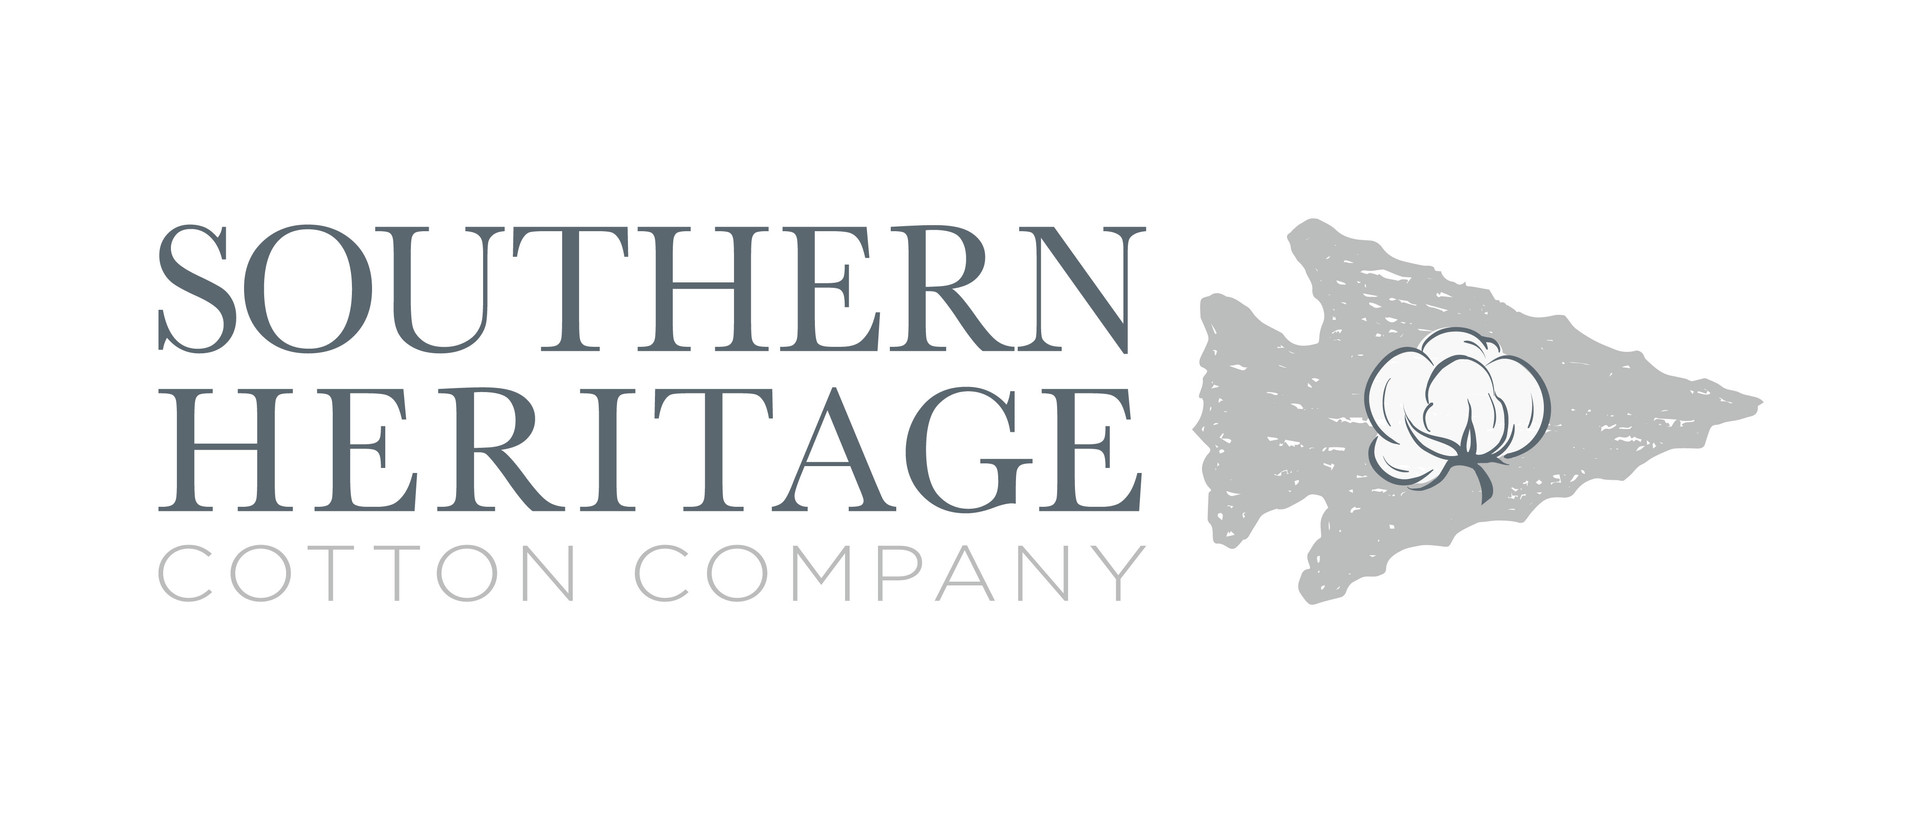 Southern Heritage Cotton Company